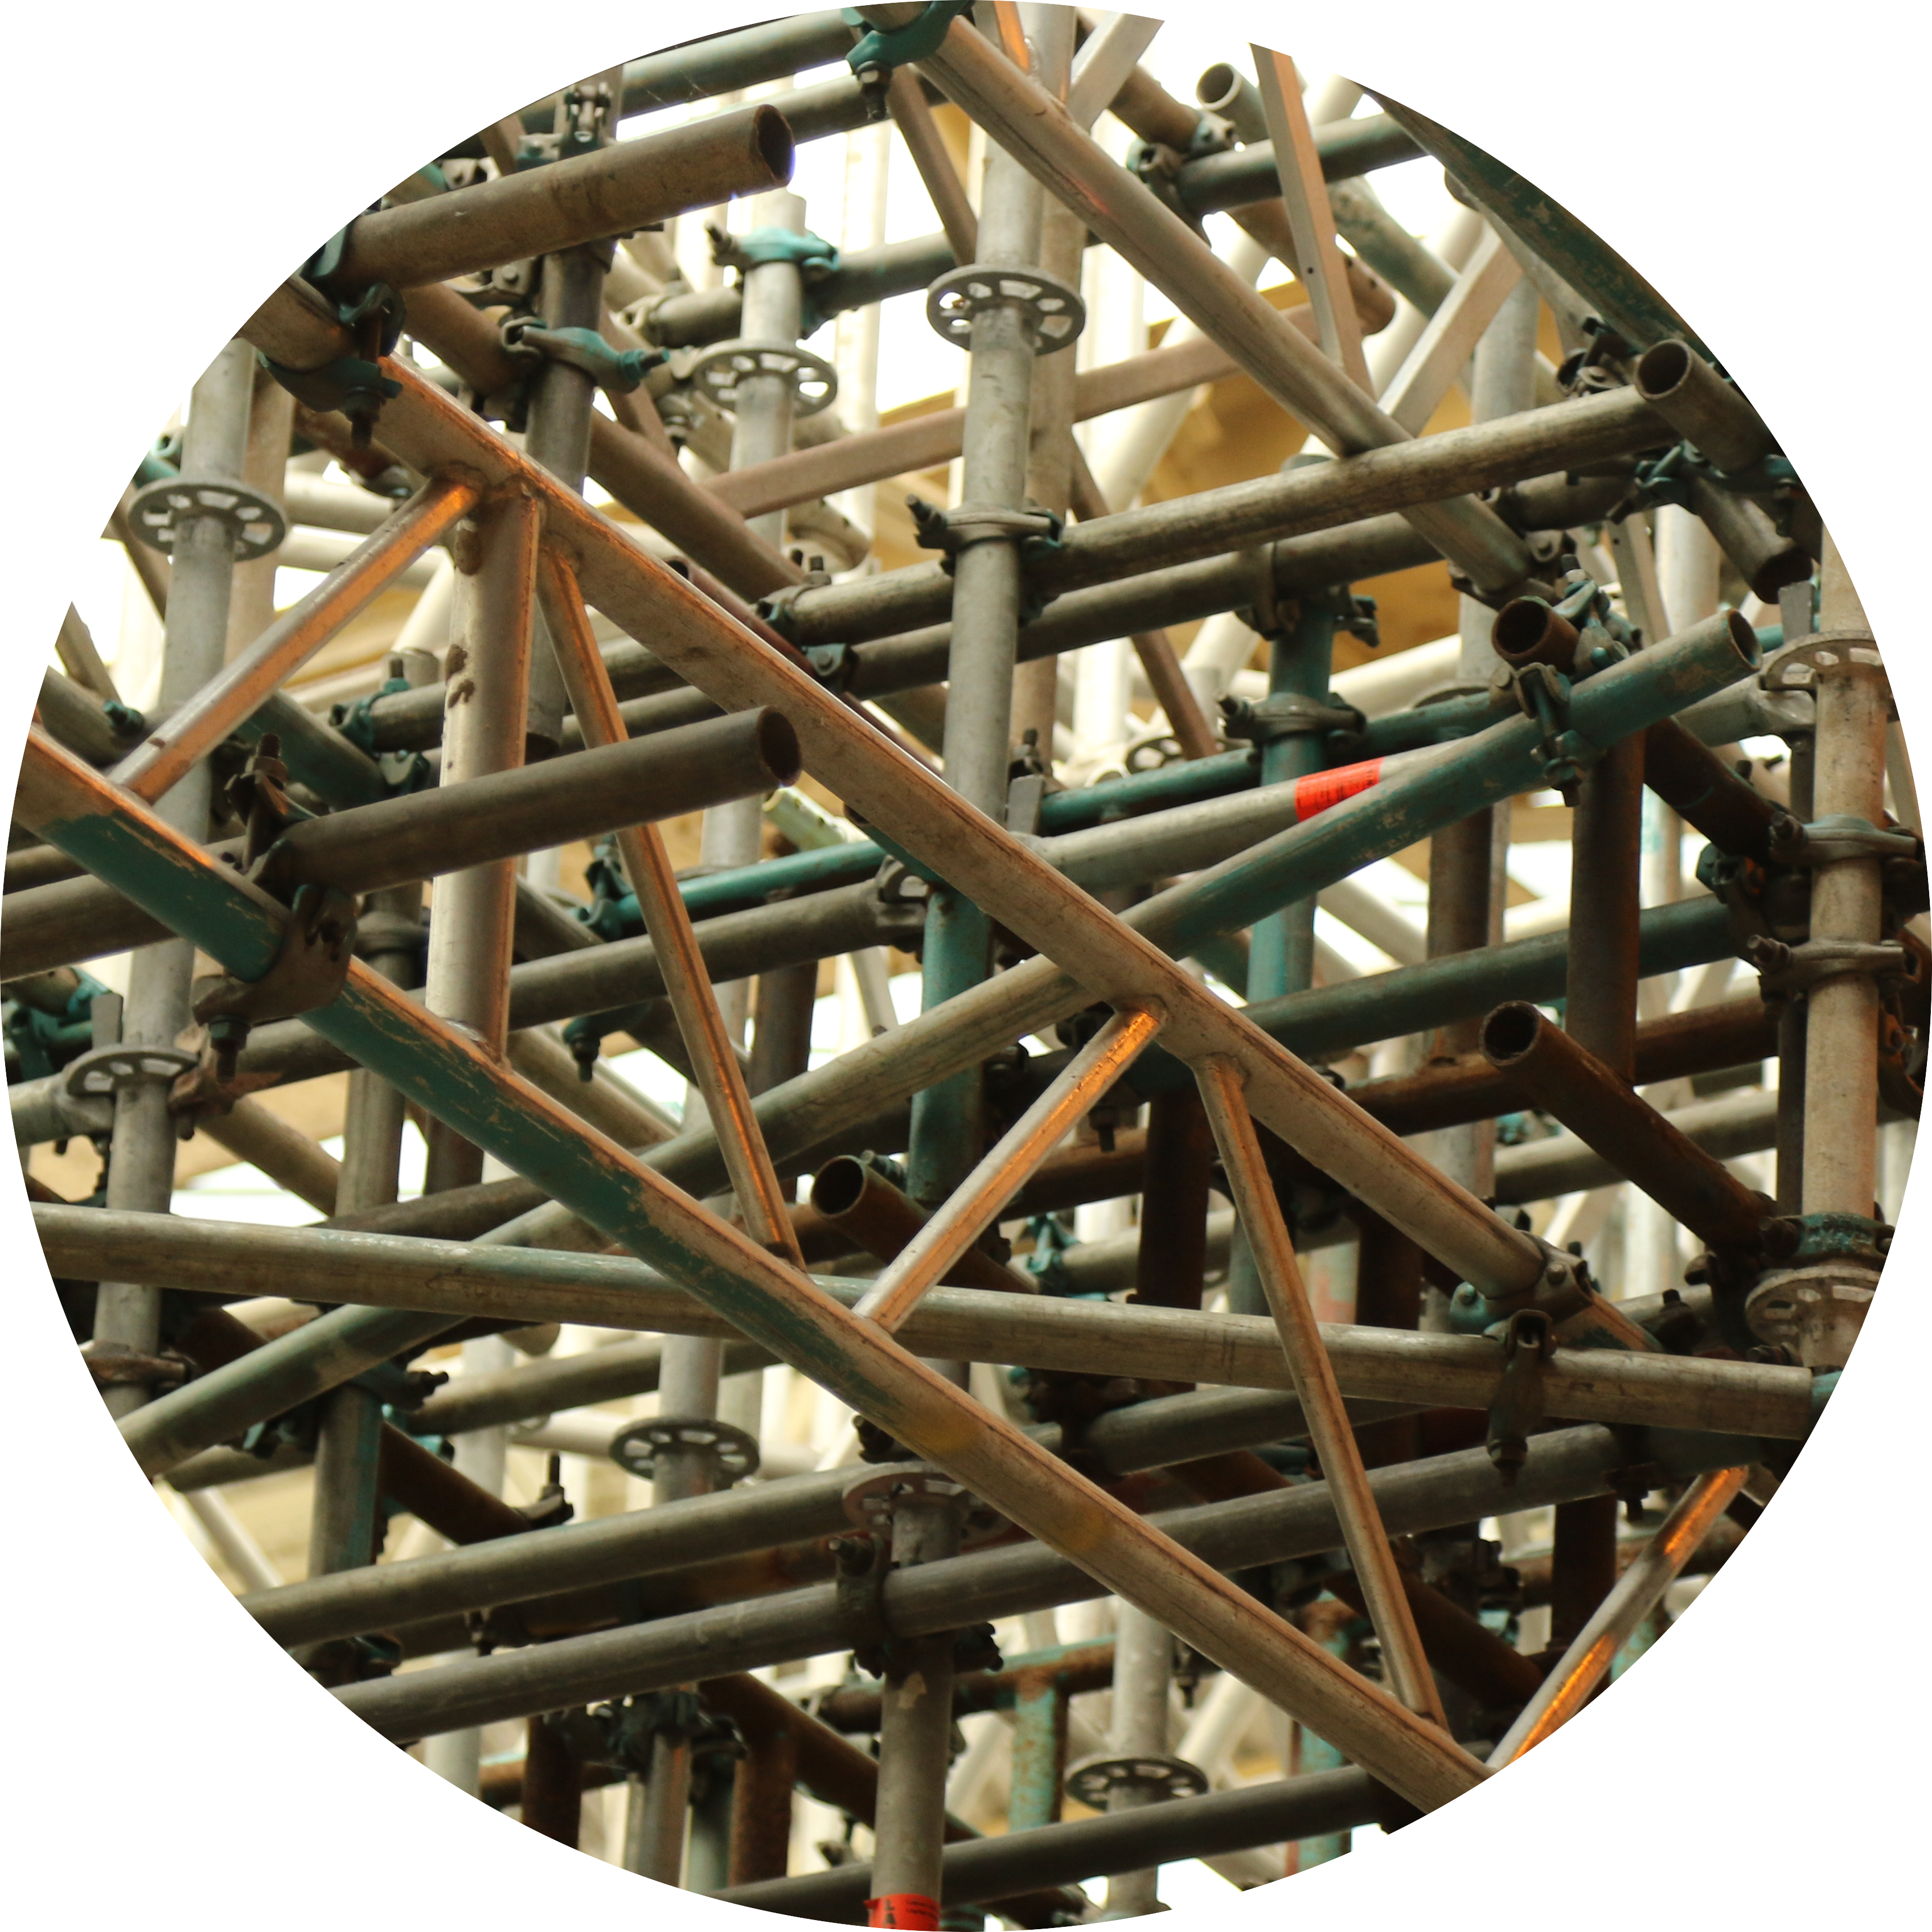 Image of scaffolding bars and brackets.